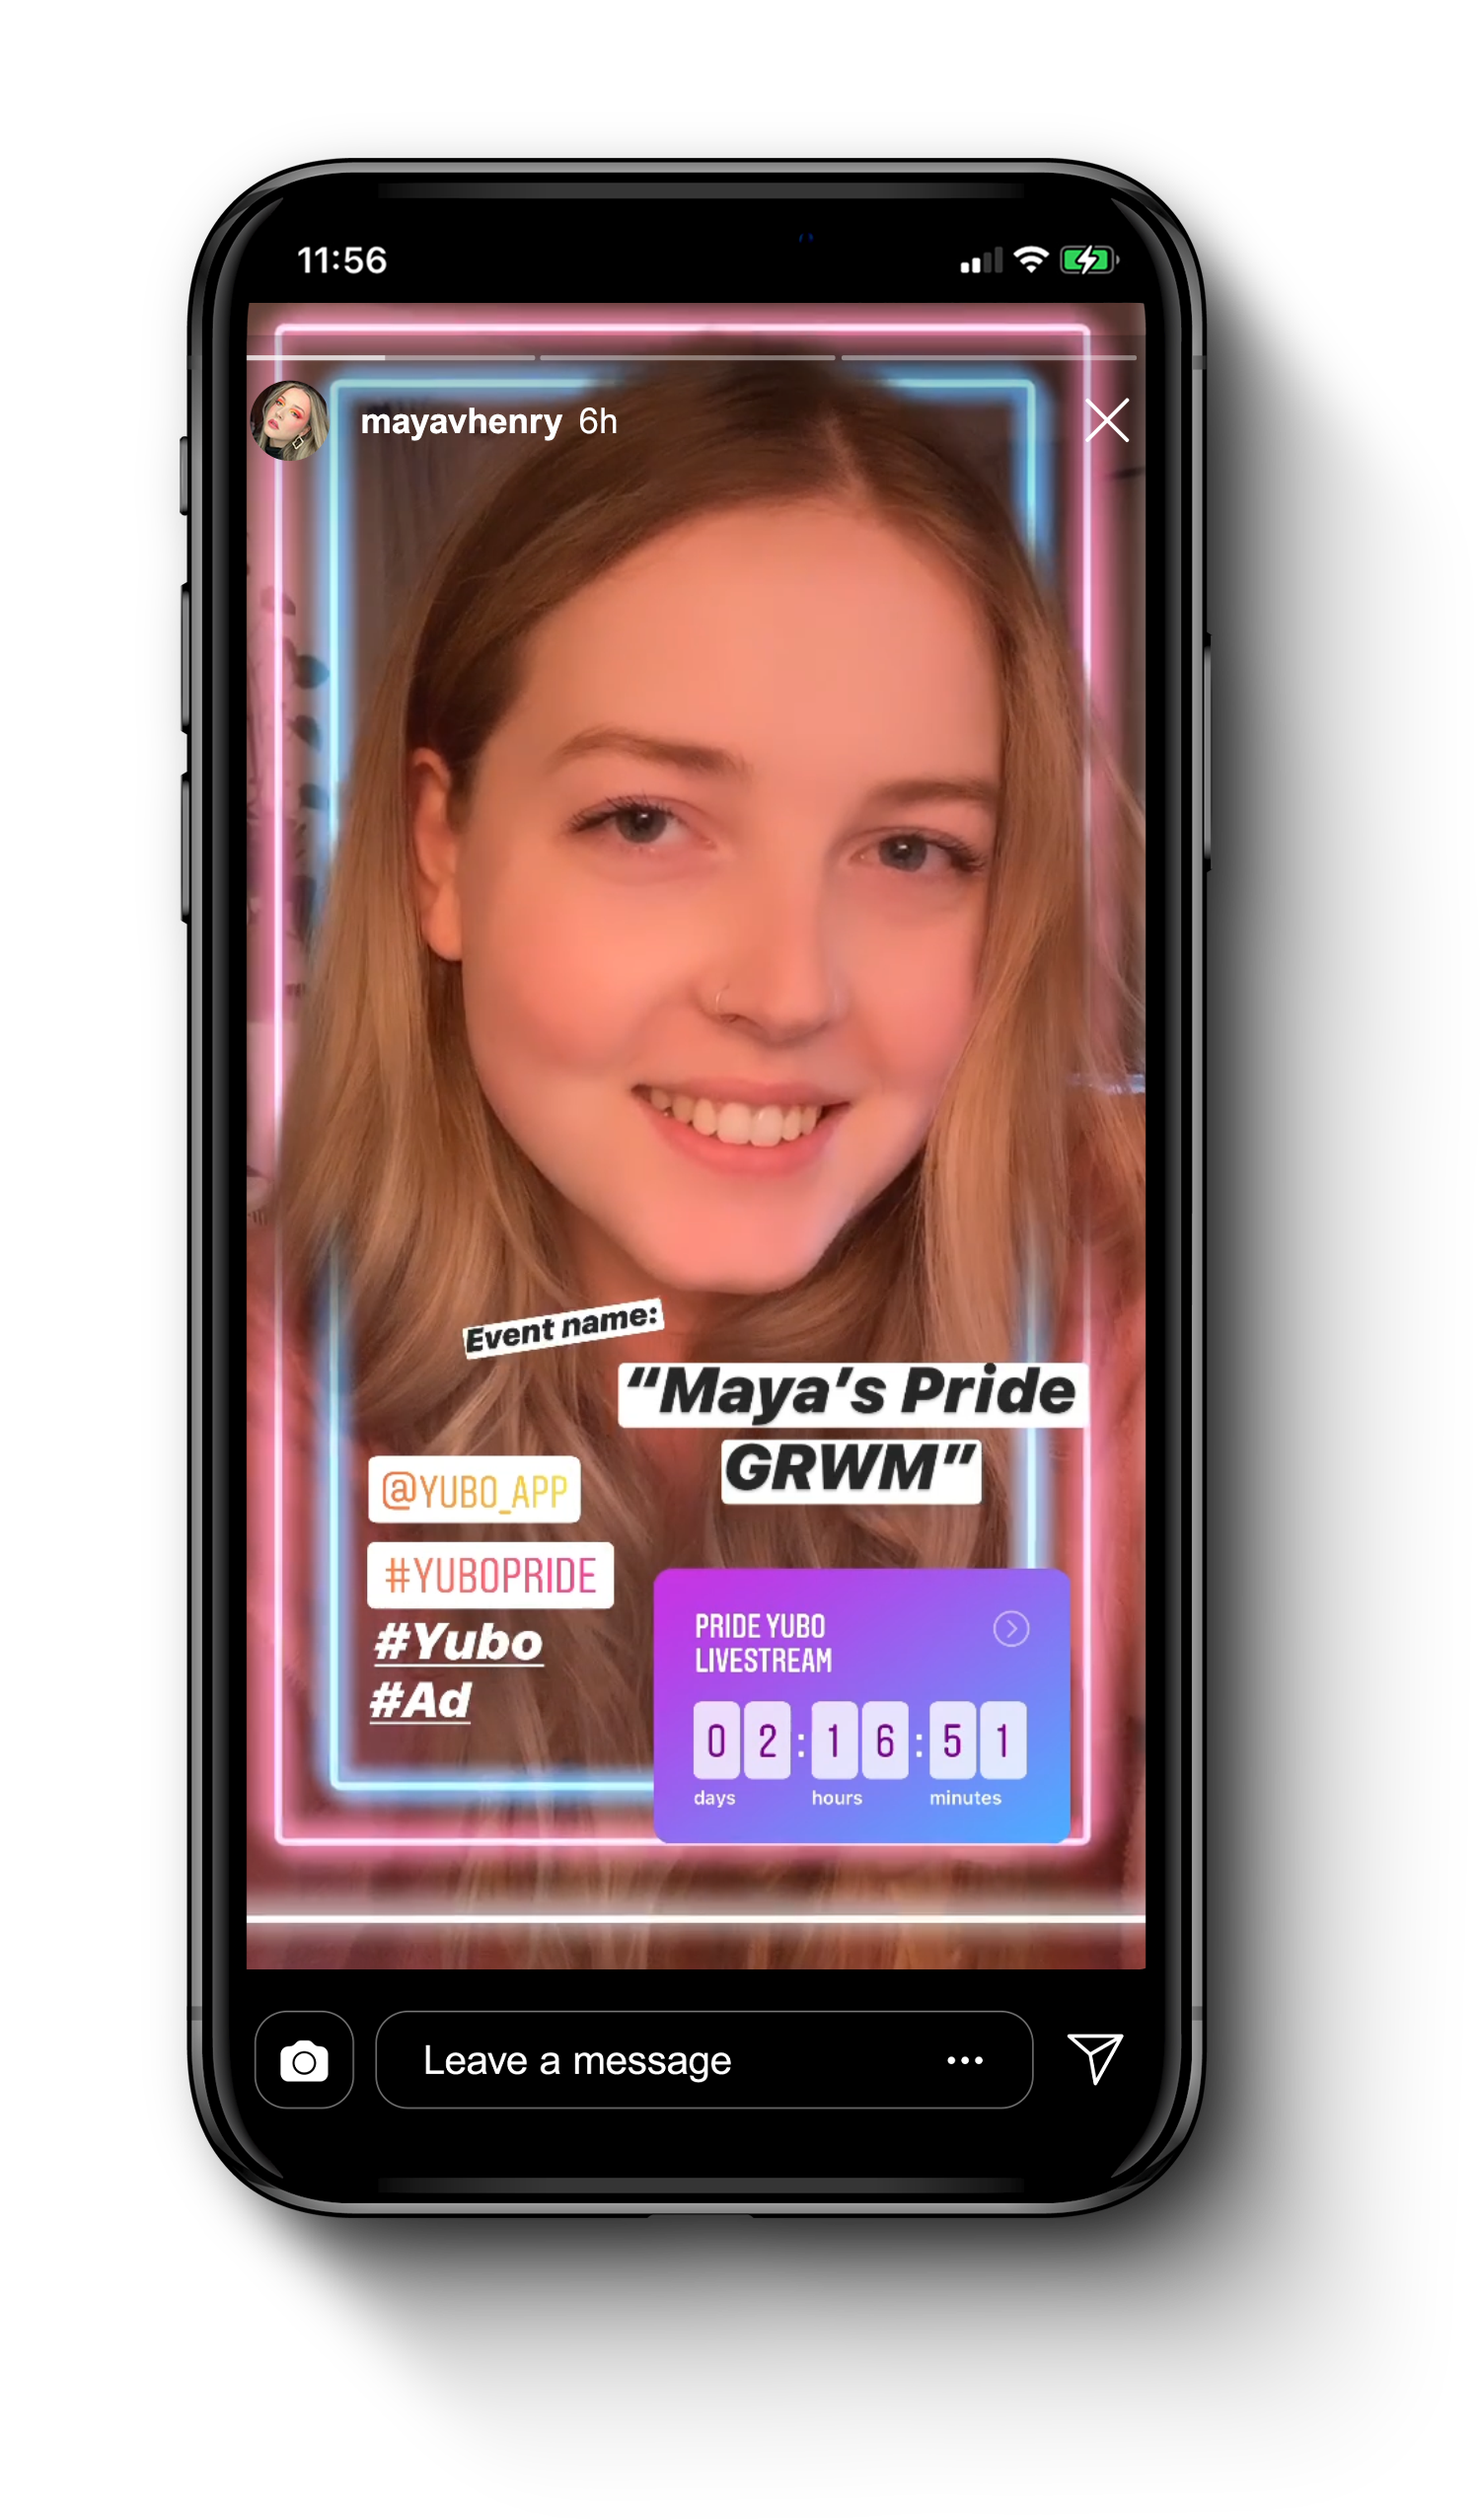 iPhone showing instagram story of Maya Henry promoting Yubo